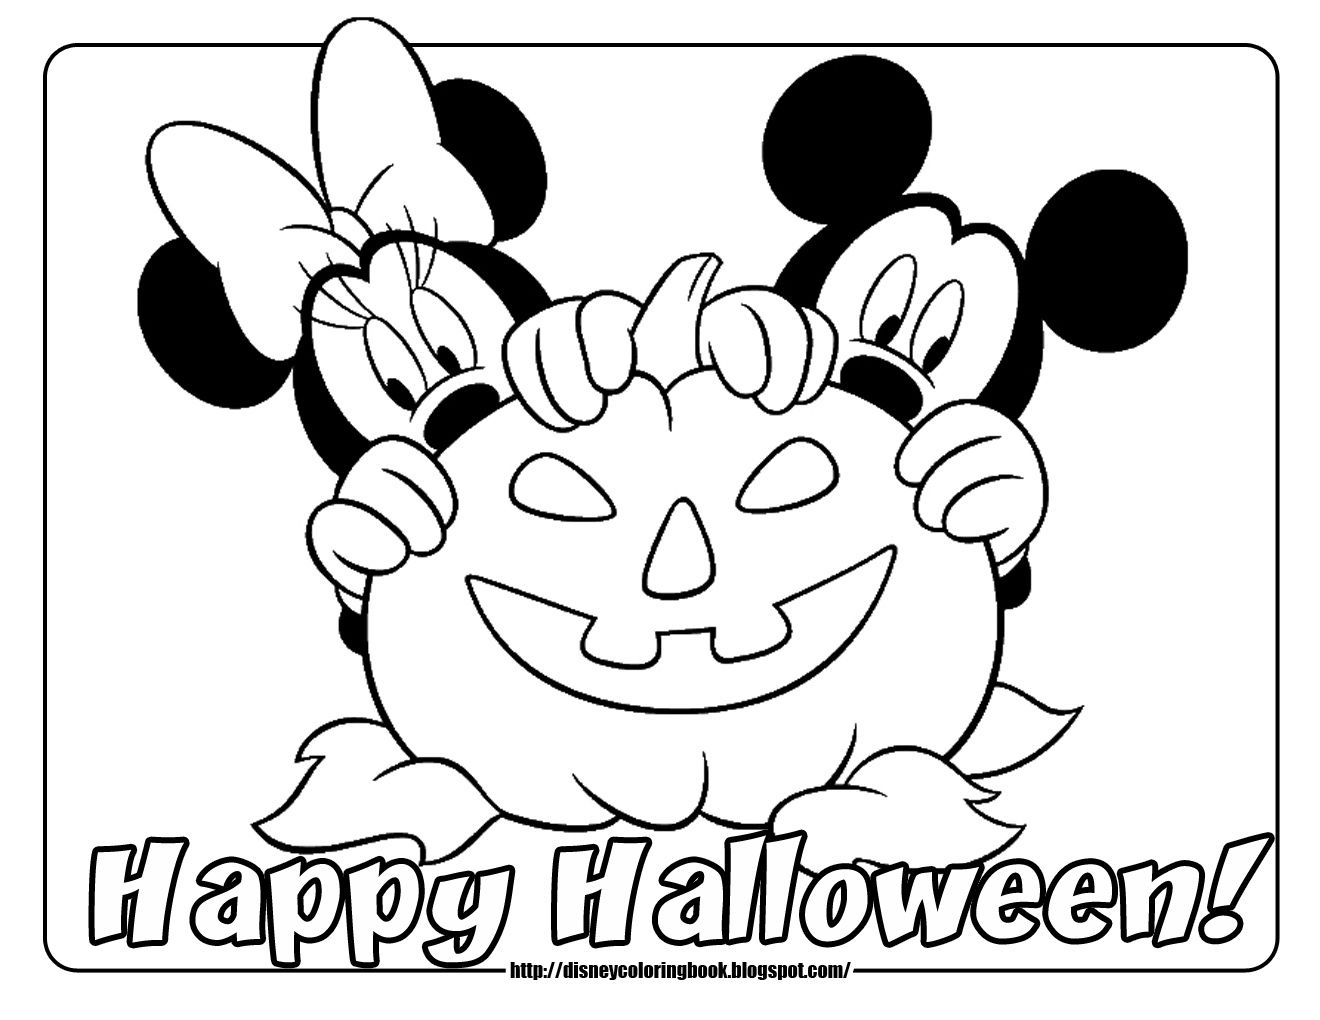 Halloween coloring printables disney - Minnie Mickey Mouse Free Disney Halloween Coloring Pages